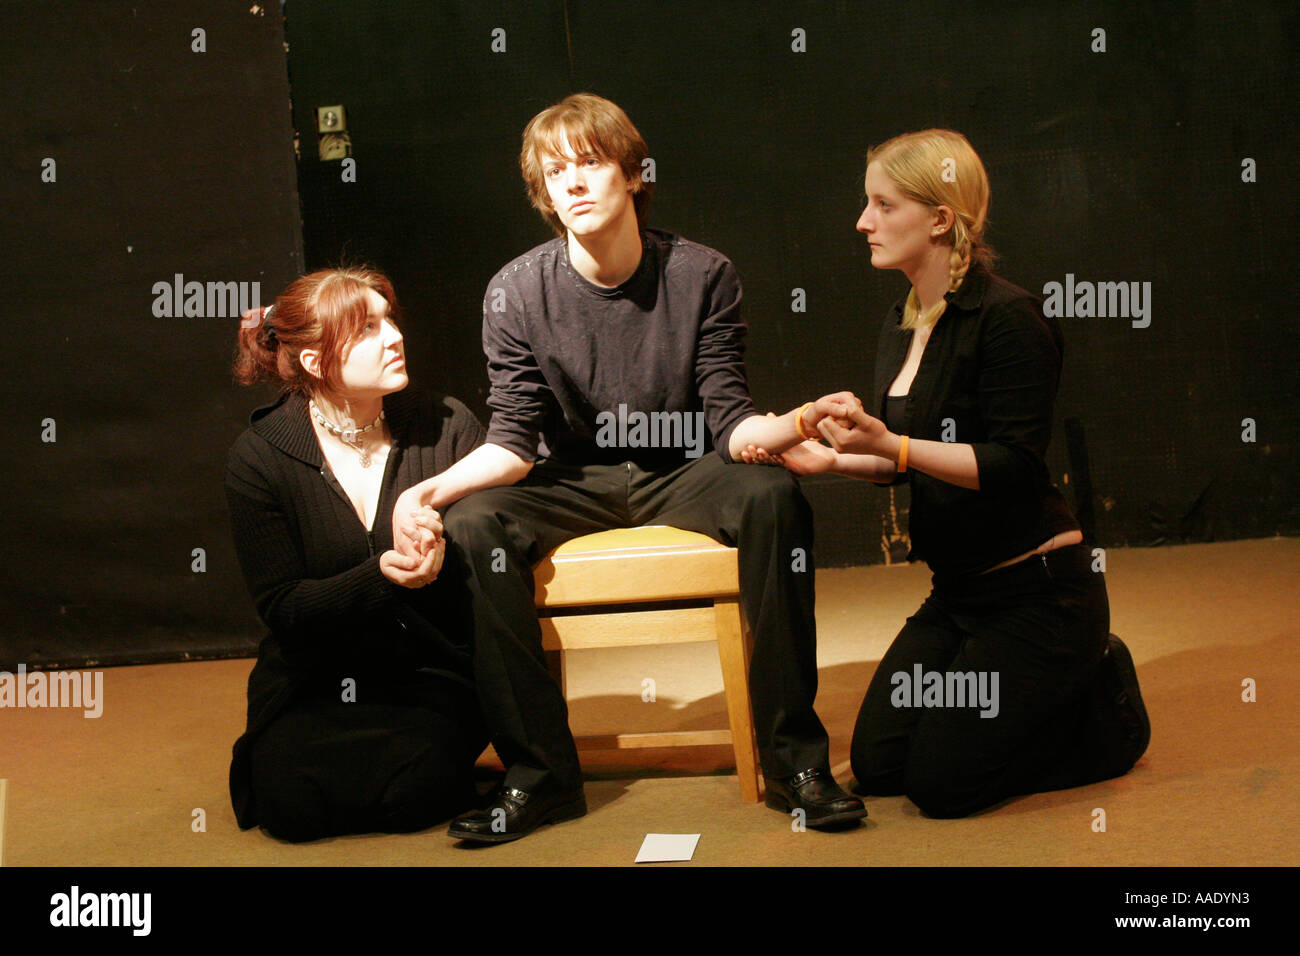 Sixth form college students in drama studio - Stock Image